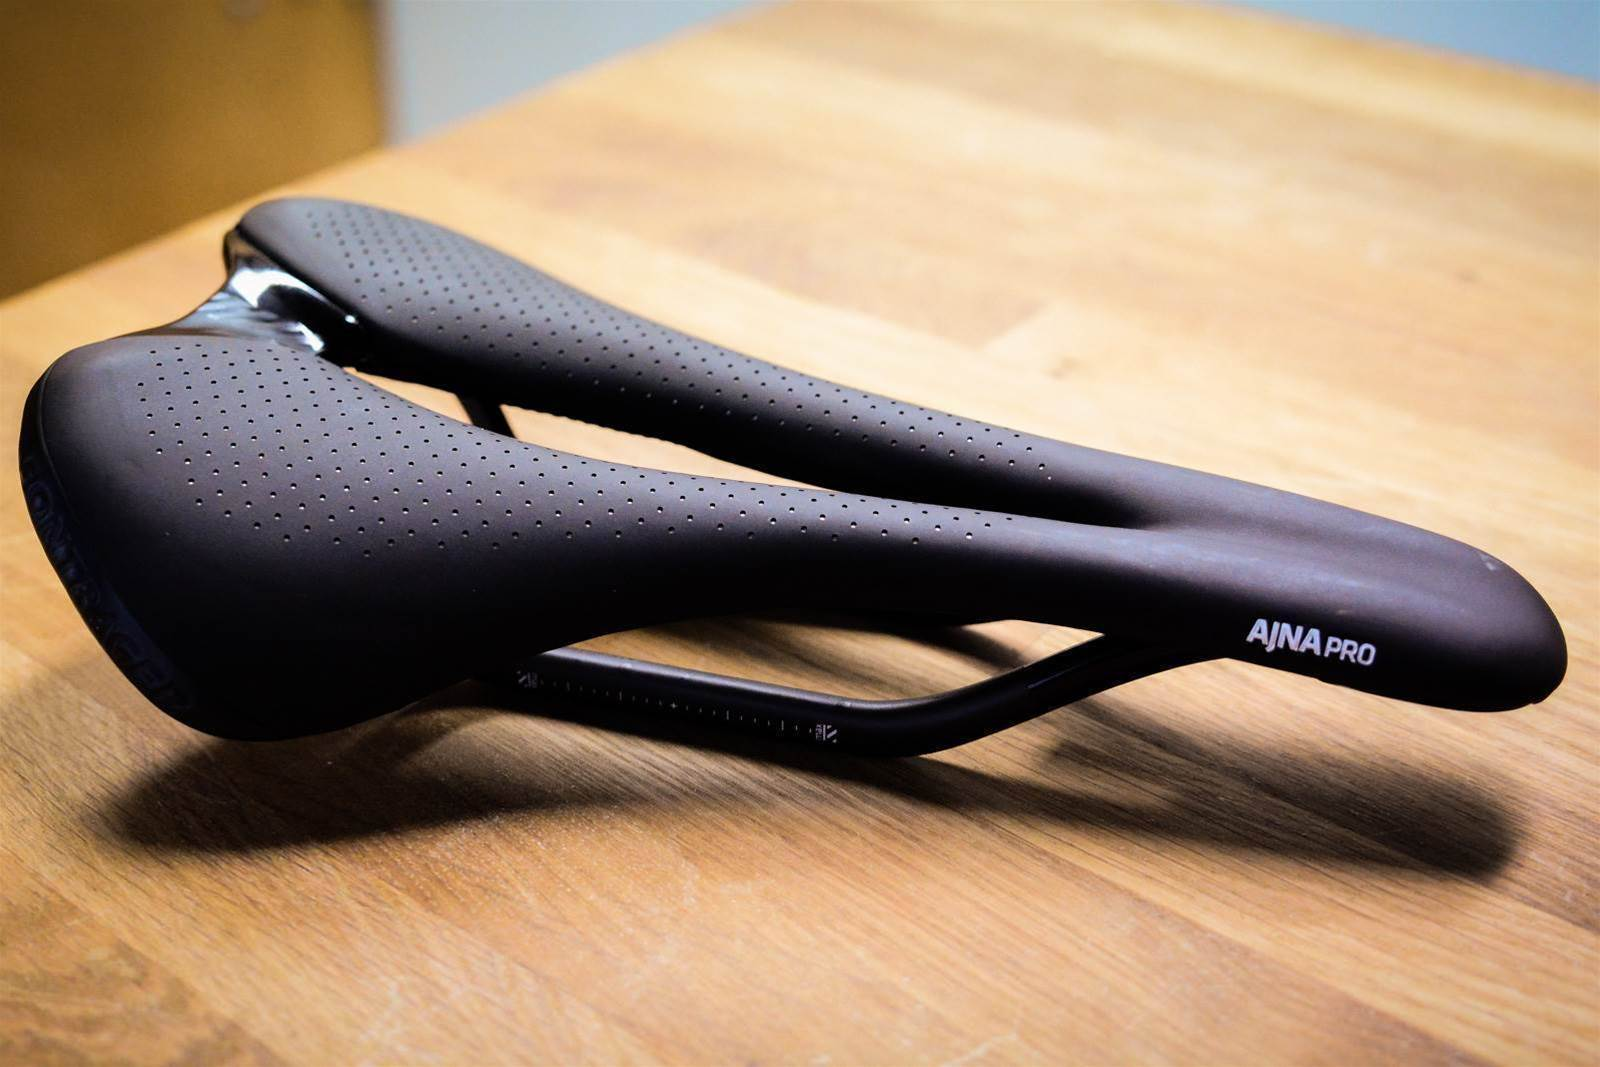 TESTED: Bontrager Ajna Pro Carbon saddle